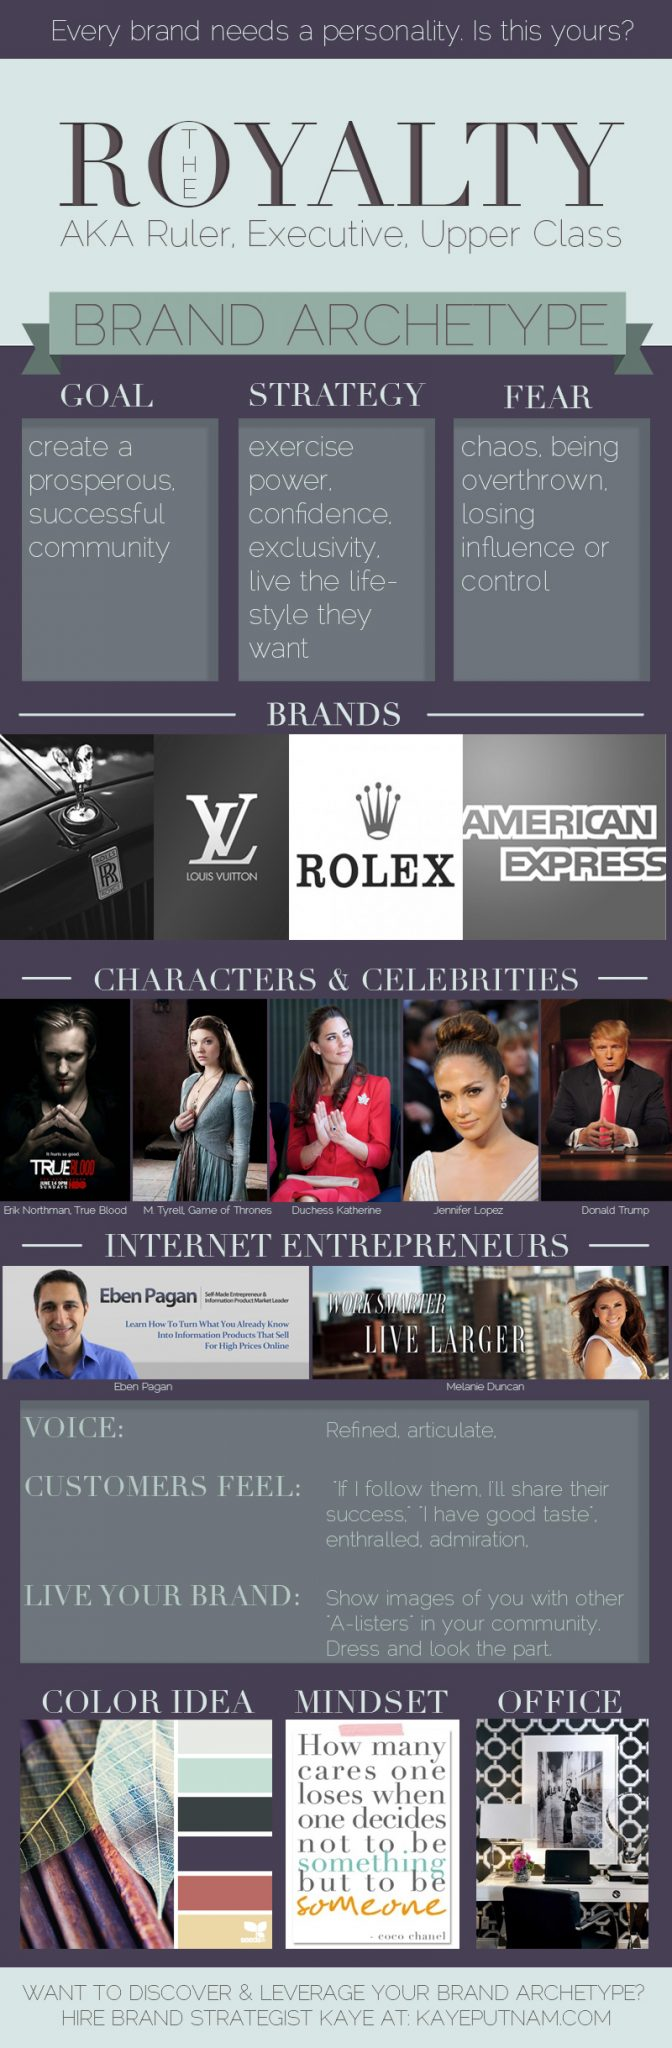 Royalty Brand Archetype Infographic